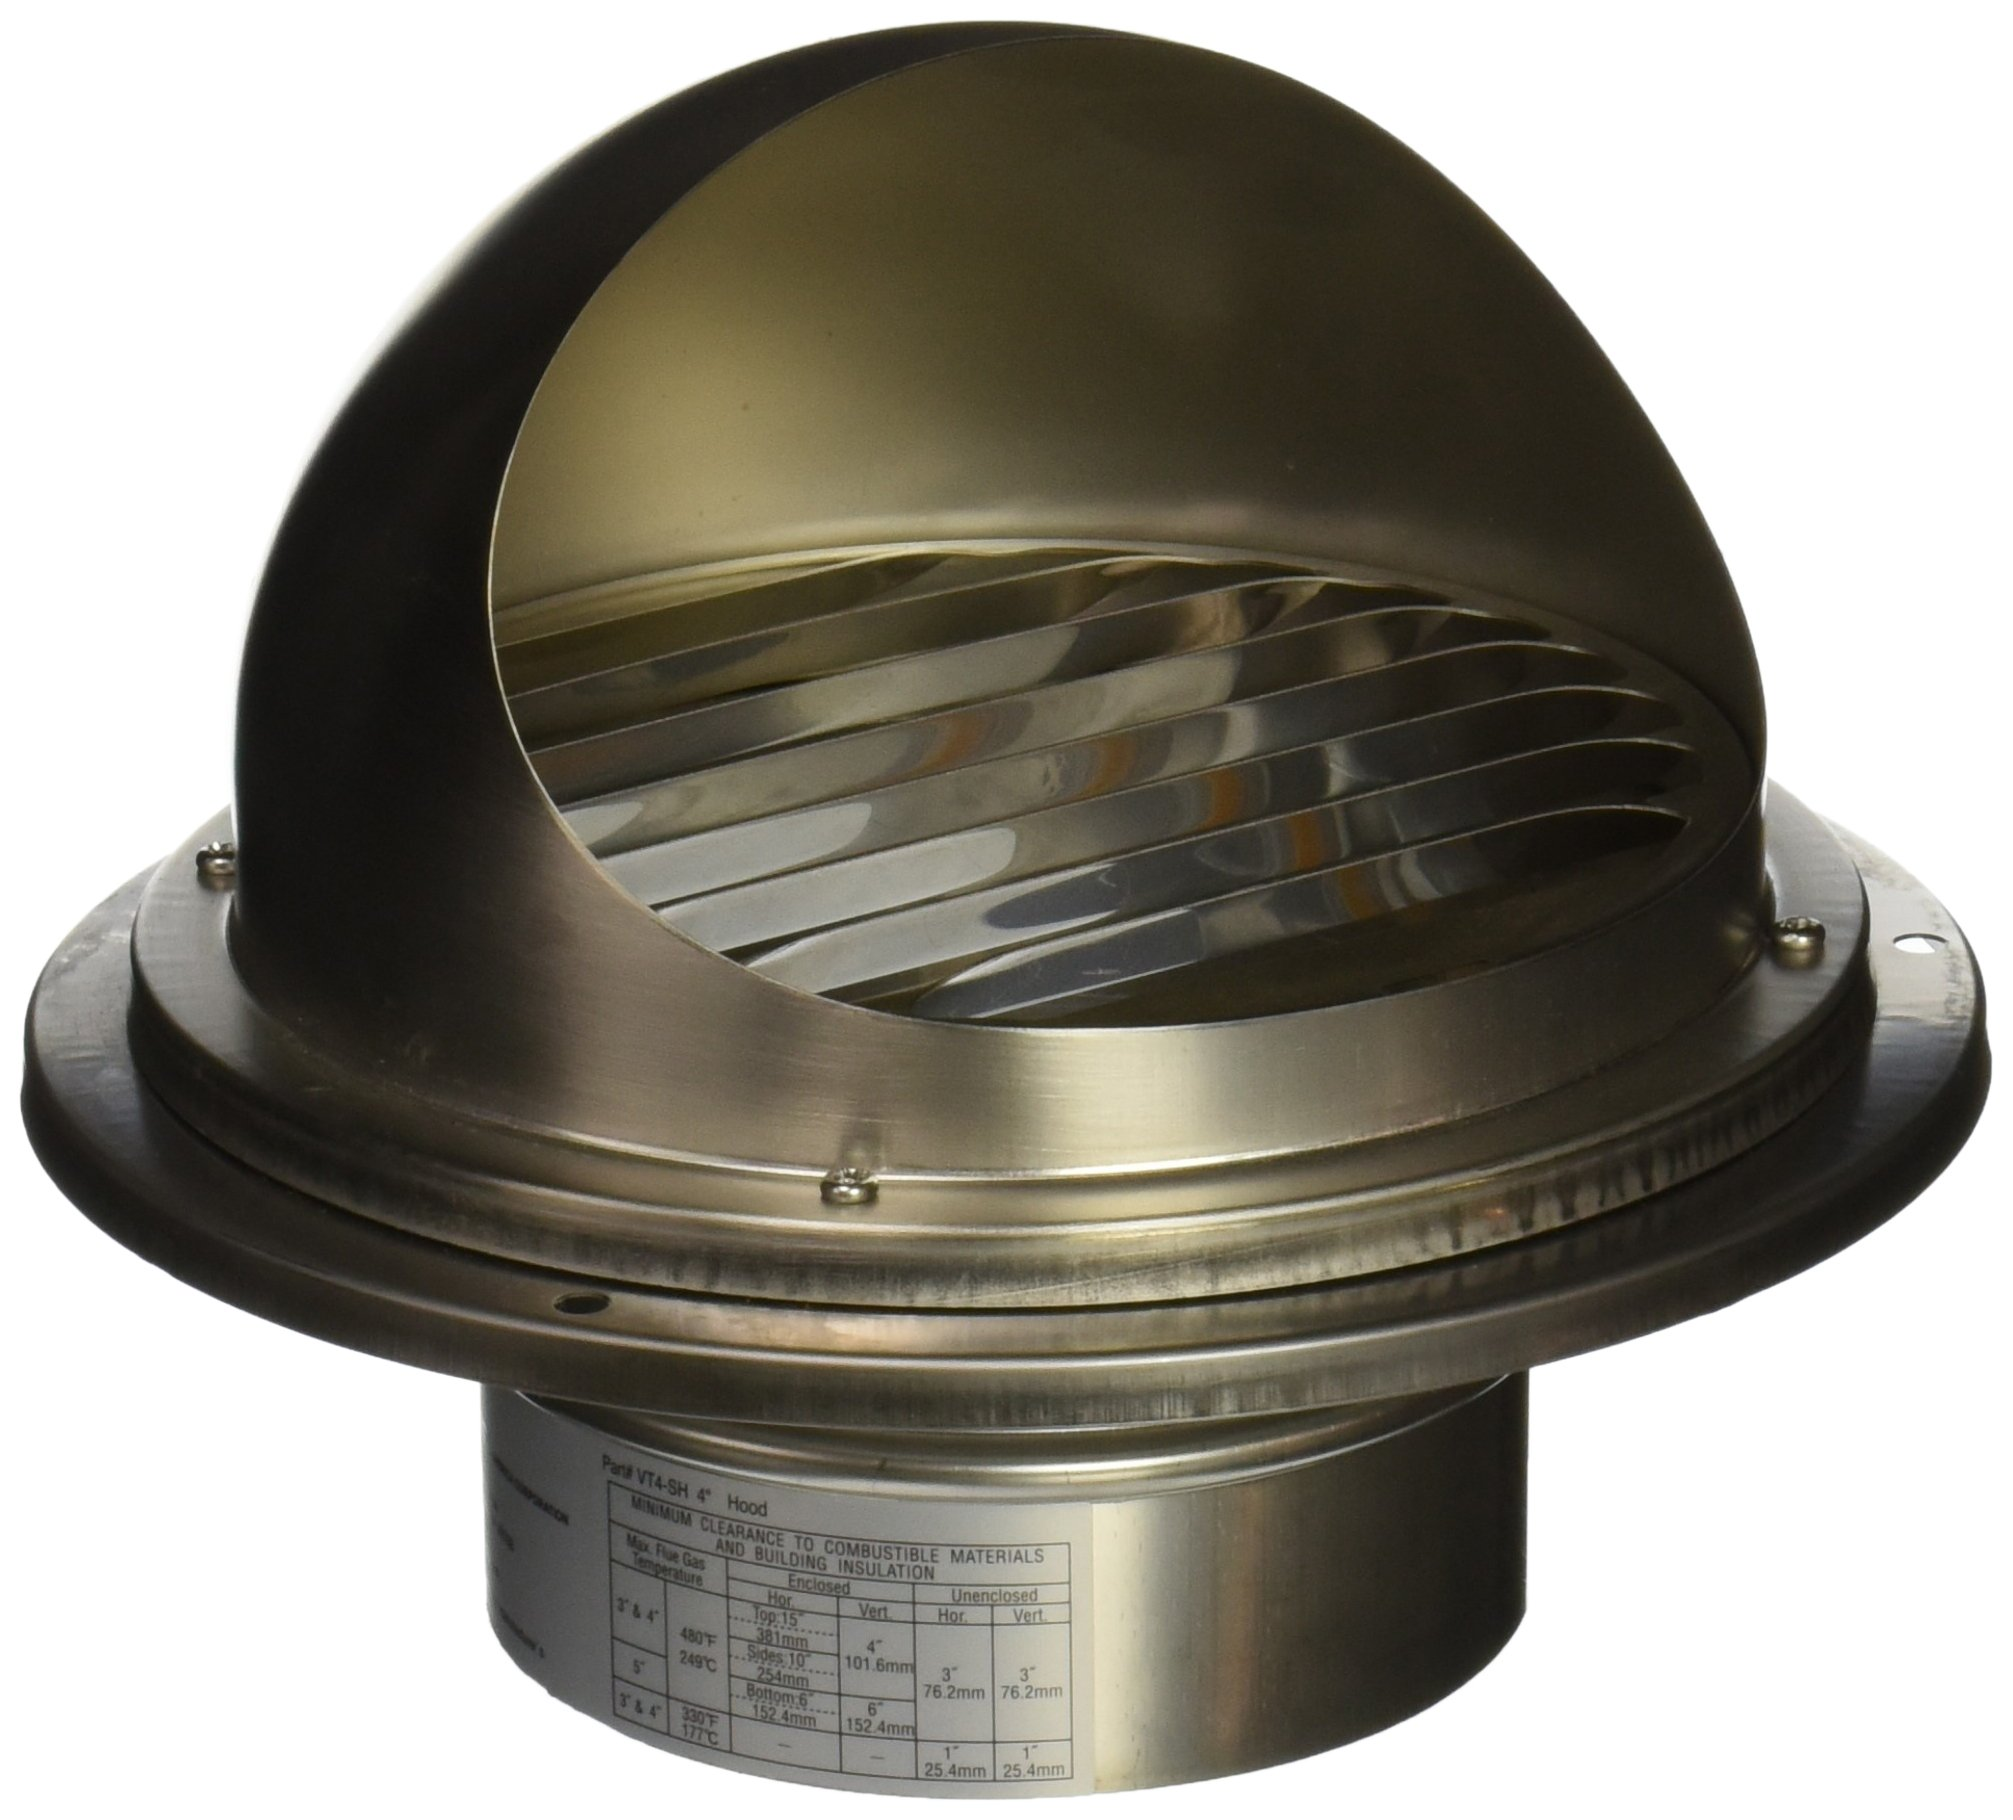 Noritz VT4-SH 4-Inch Hood Termination for Single Wall Stainless Steel Venting